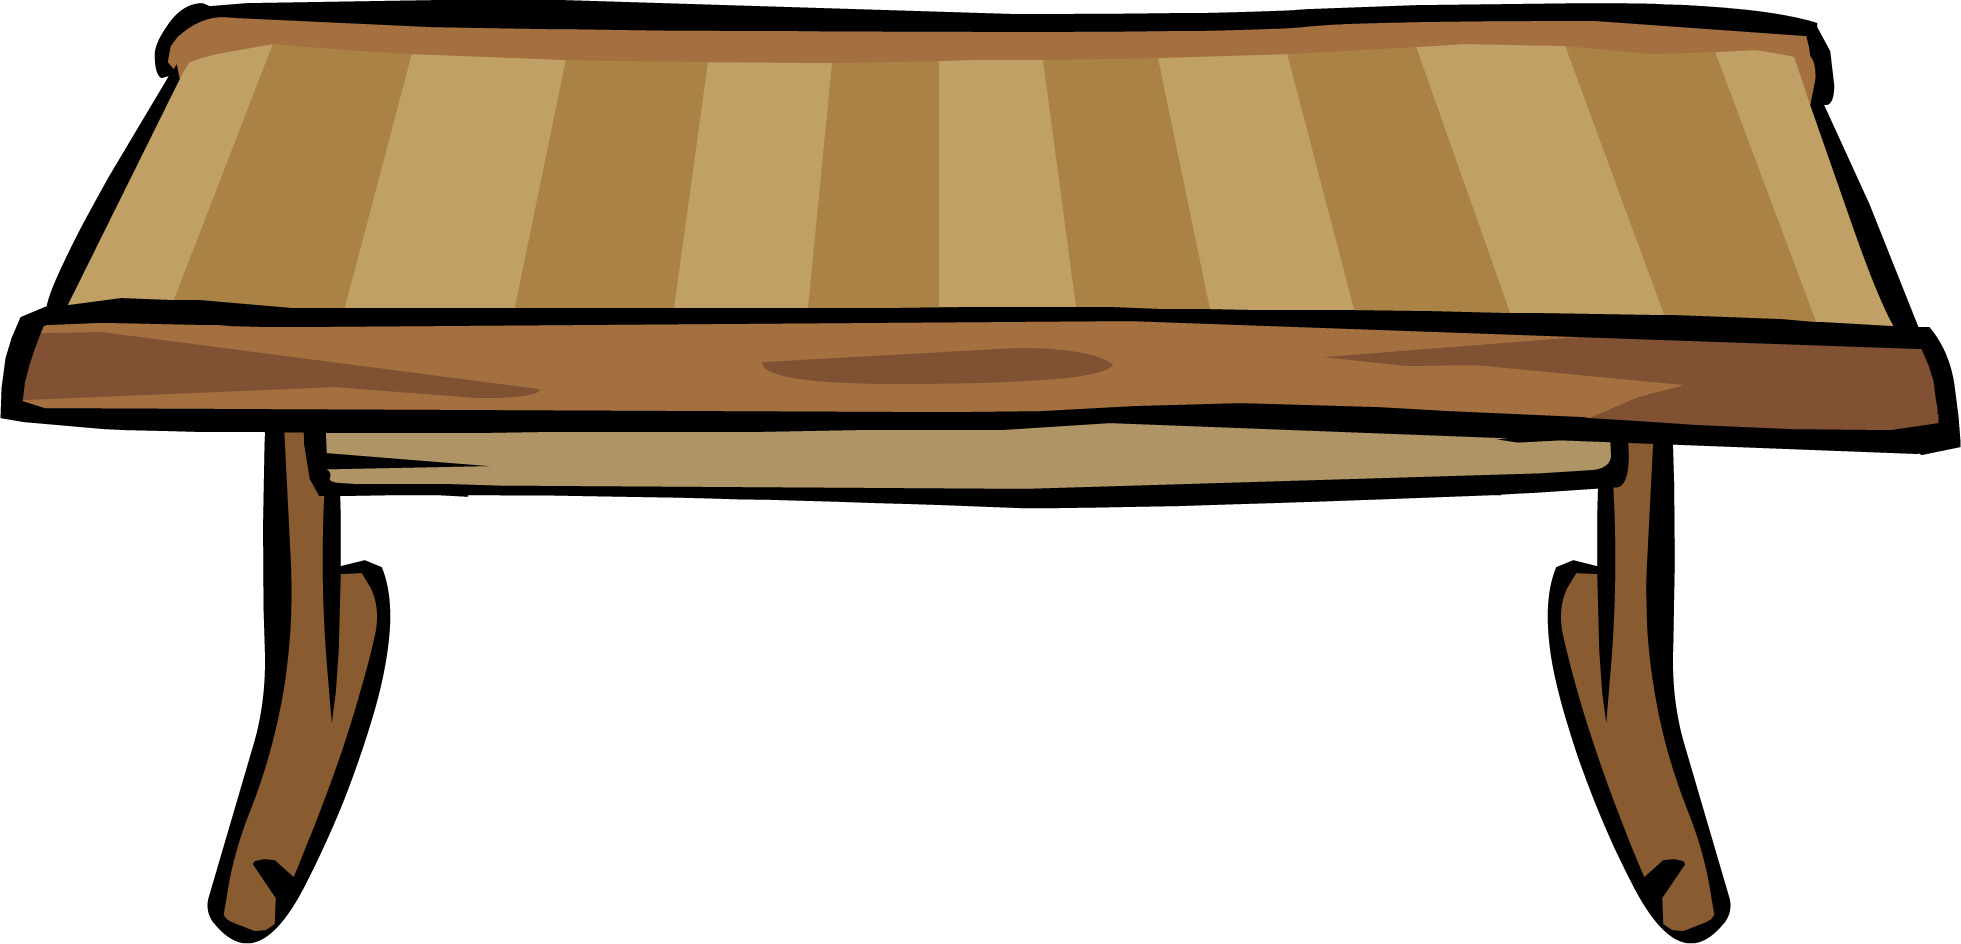 Image bamboo table png. Furniture clipart wood furniture